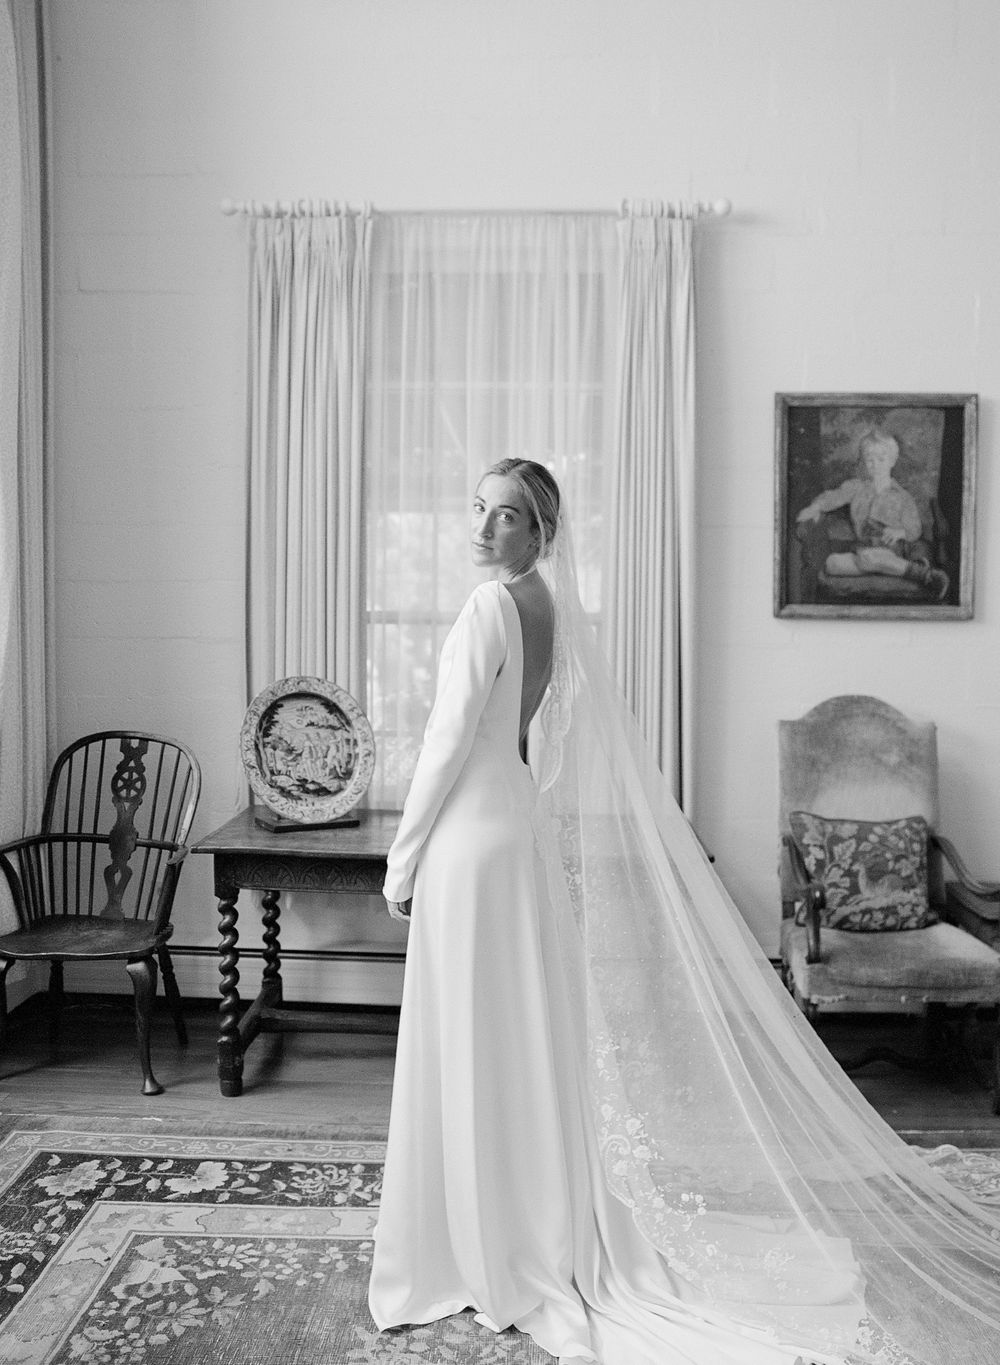 Bridal portrait in natural light